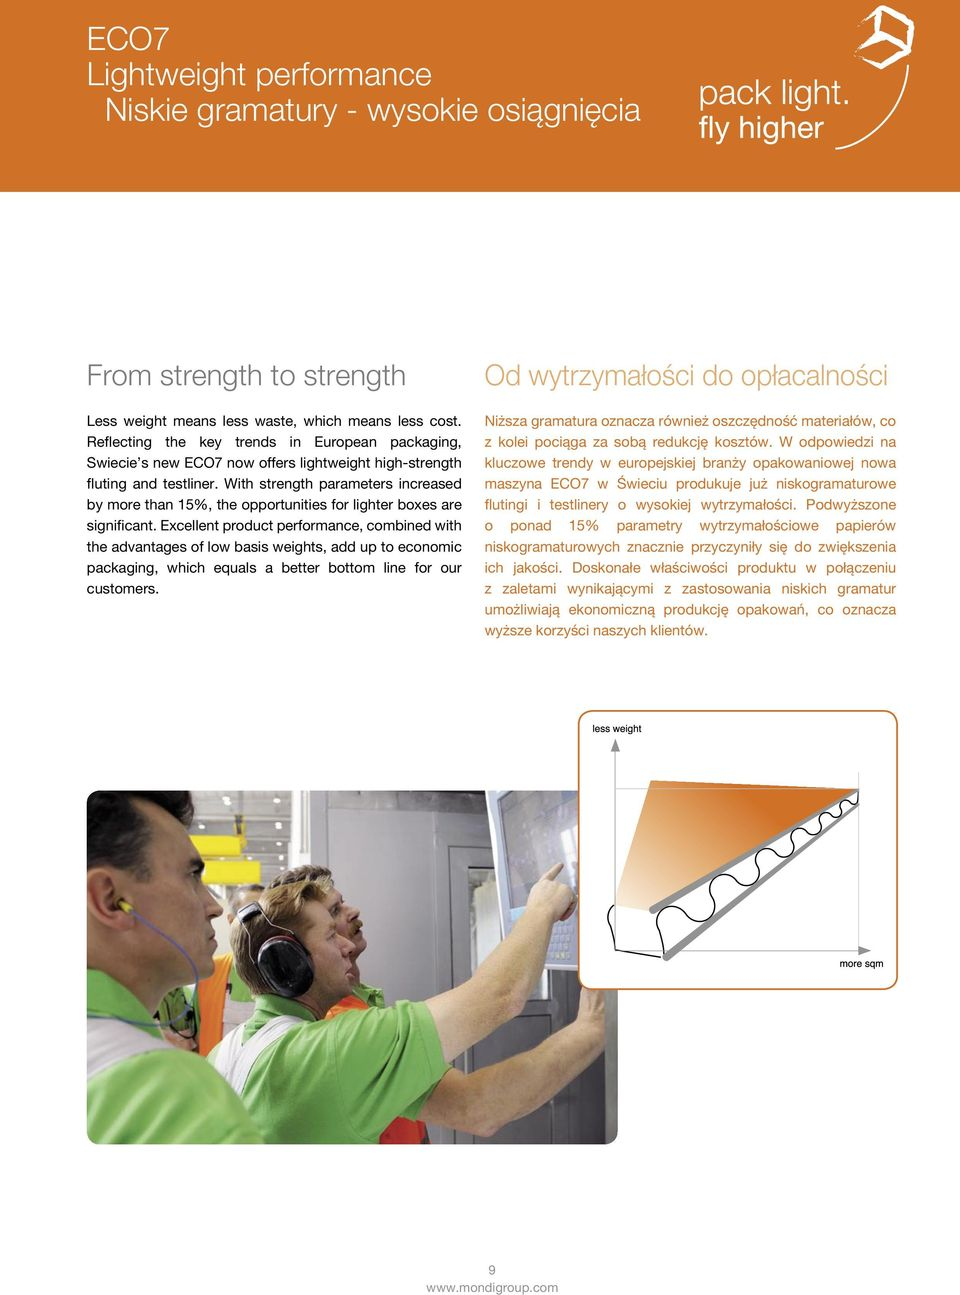 With strength parameters increased by more than 15%, the opportunities for lighter boxes are significant.